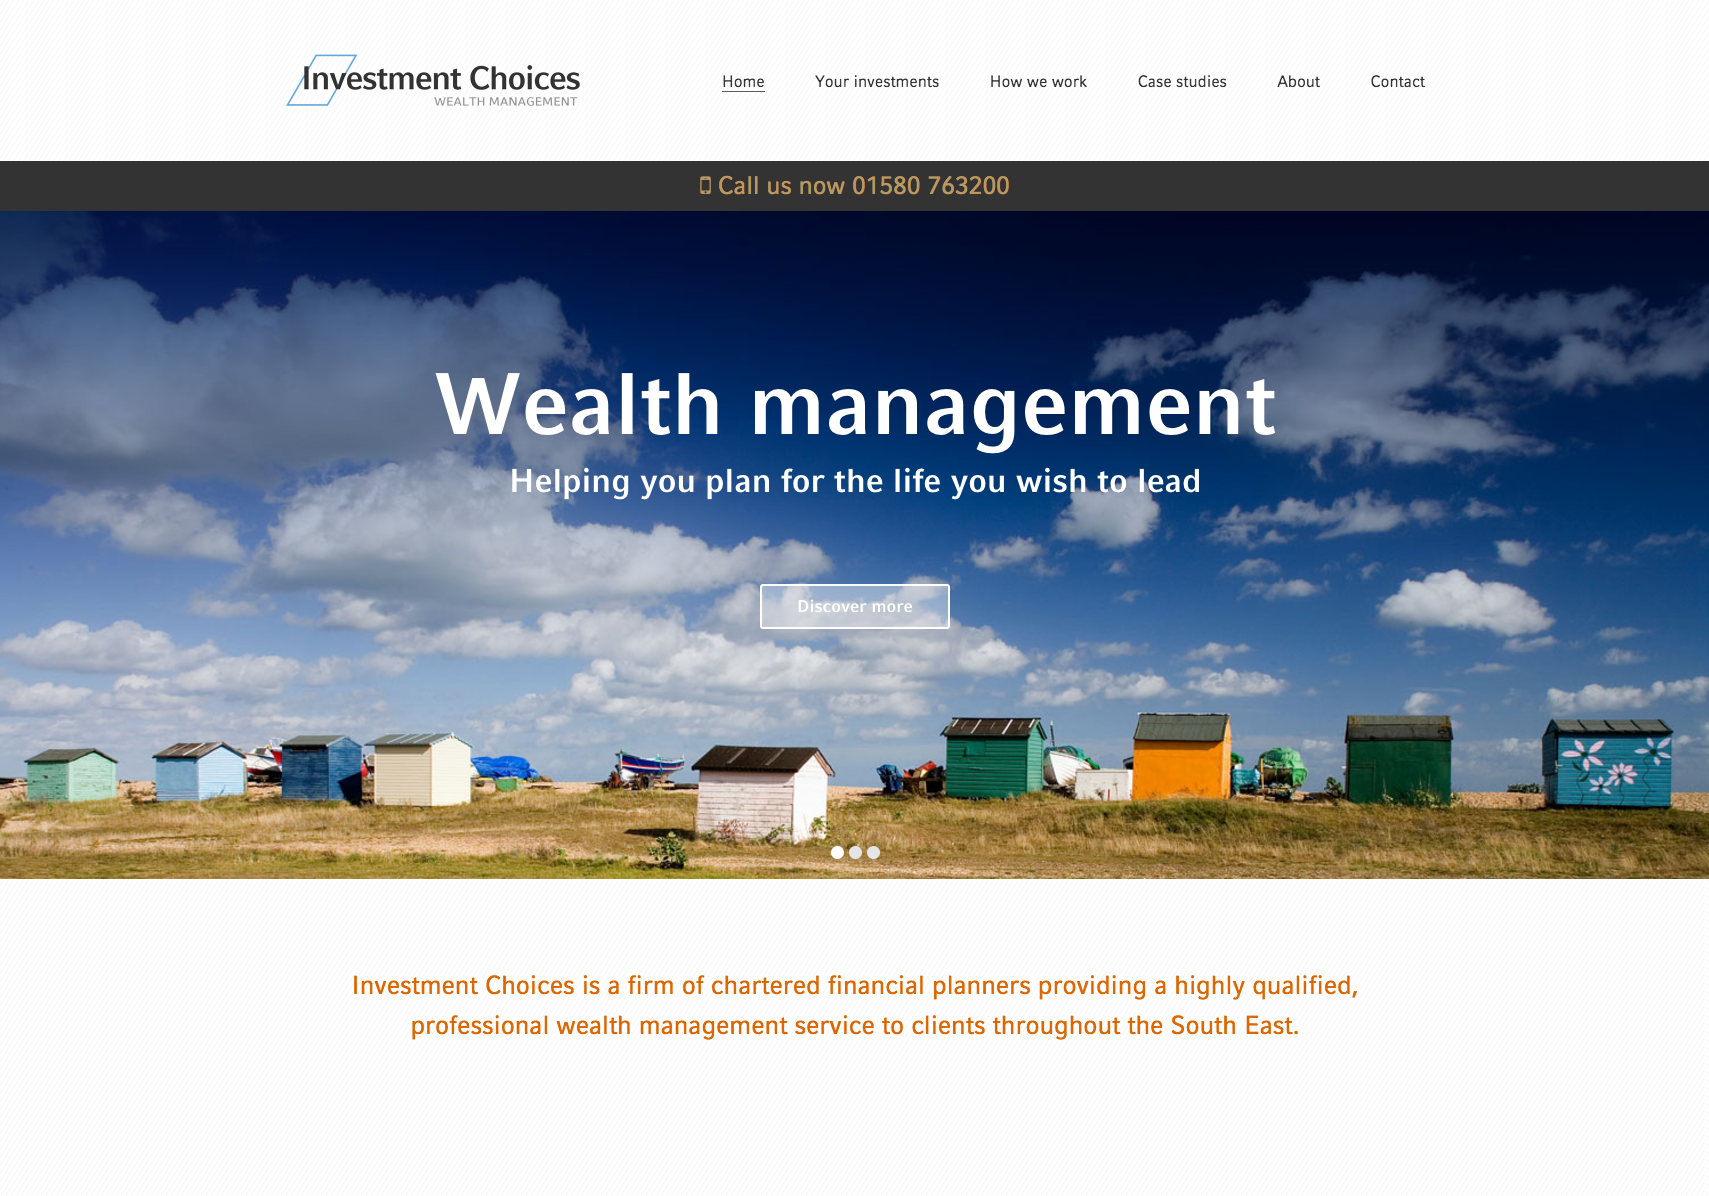 Best investment options uk 2016